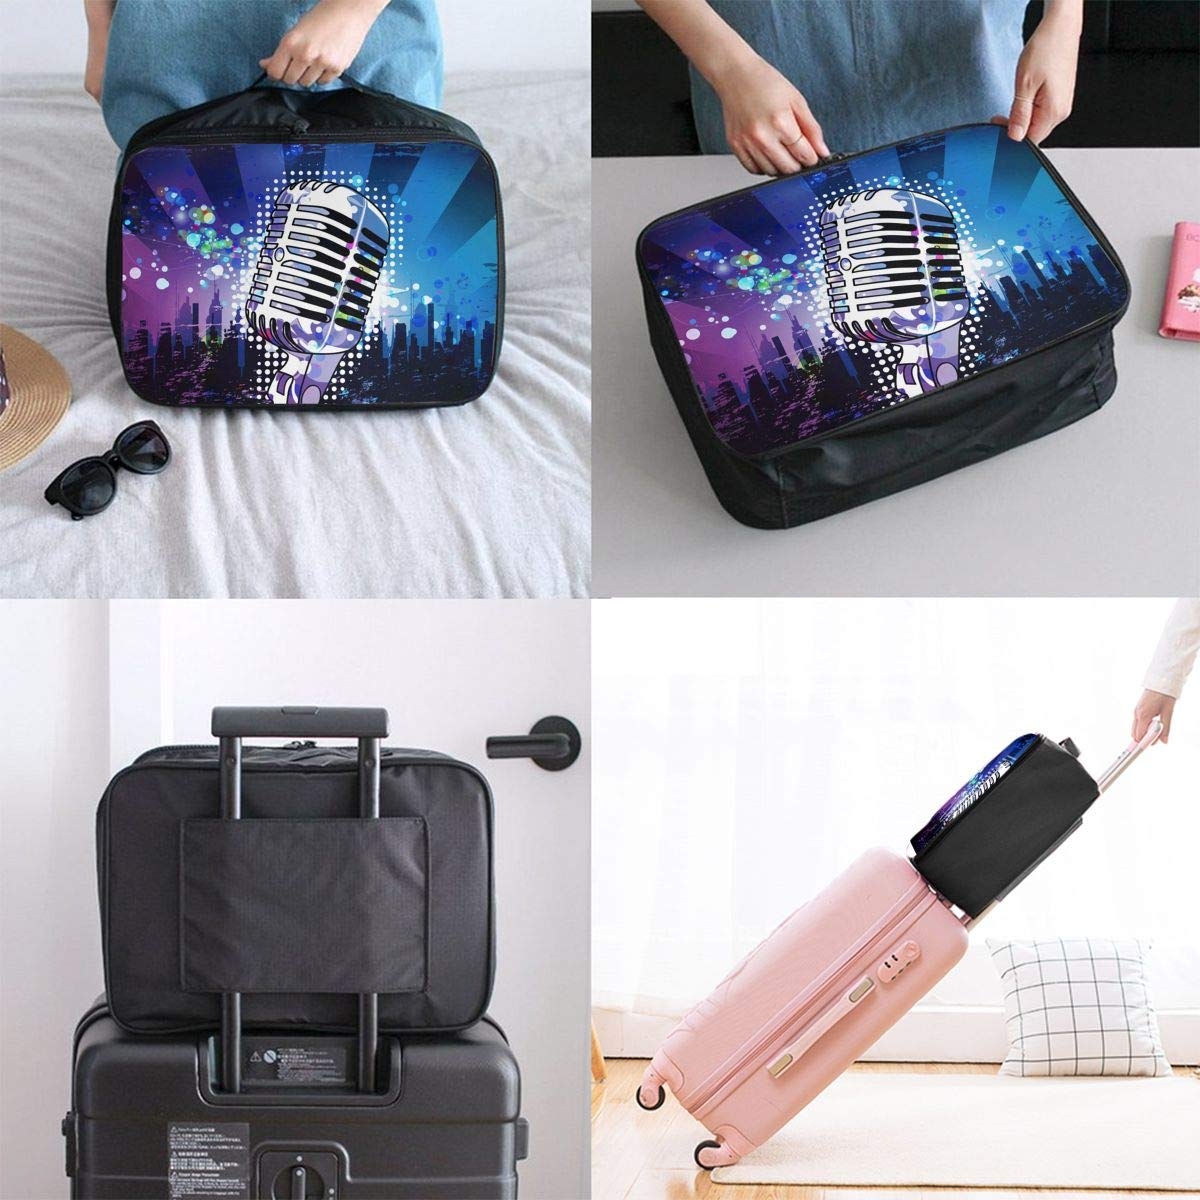 Travel Luggage Duffle Bag Lightweight Portable Handbag Microphone Large Capacity Waterproof Foldable Storage Tote